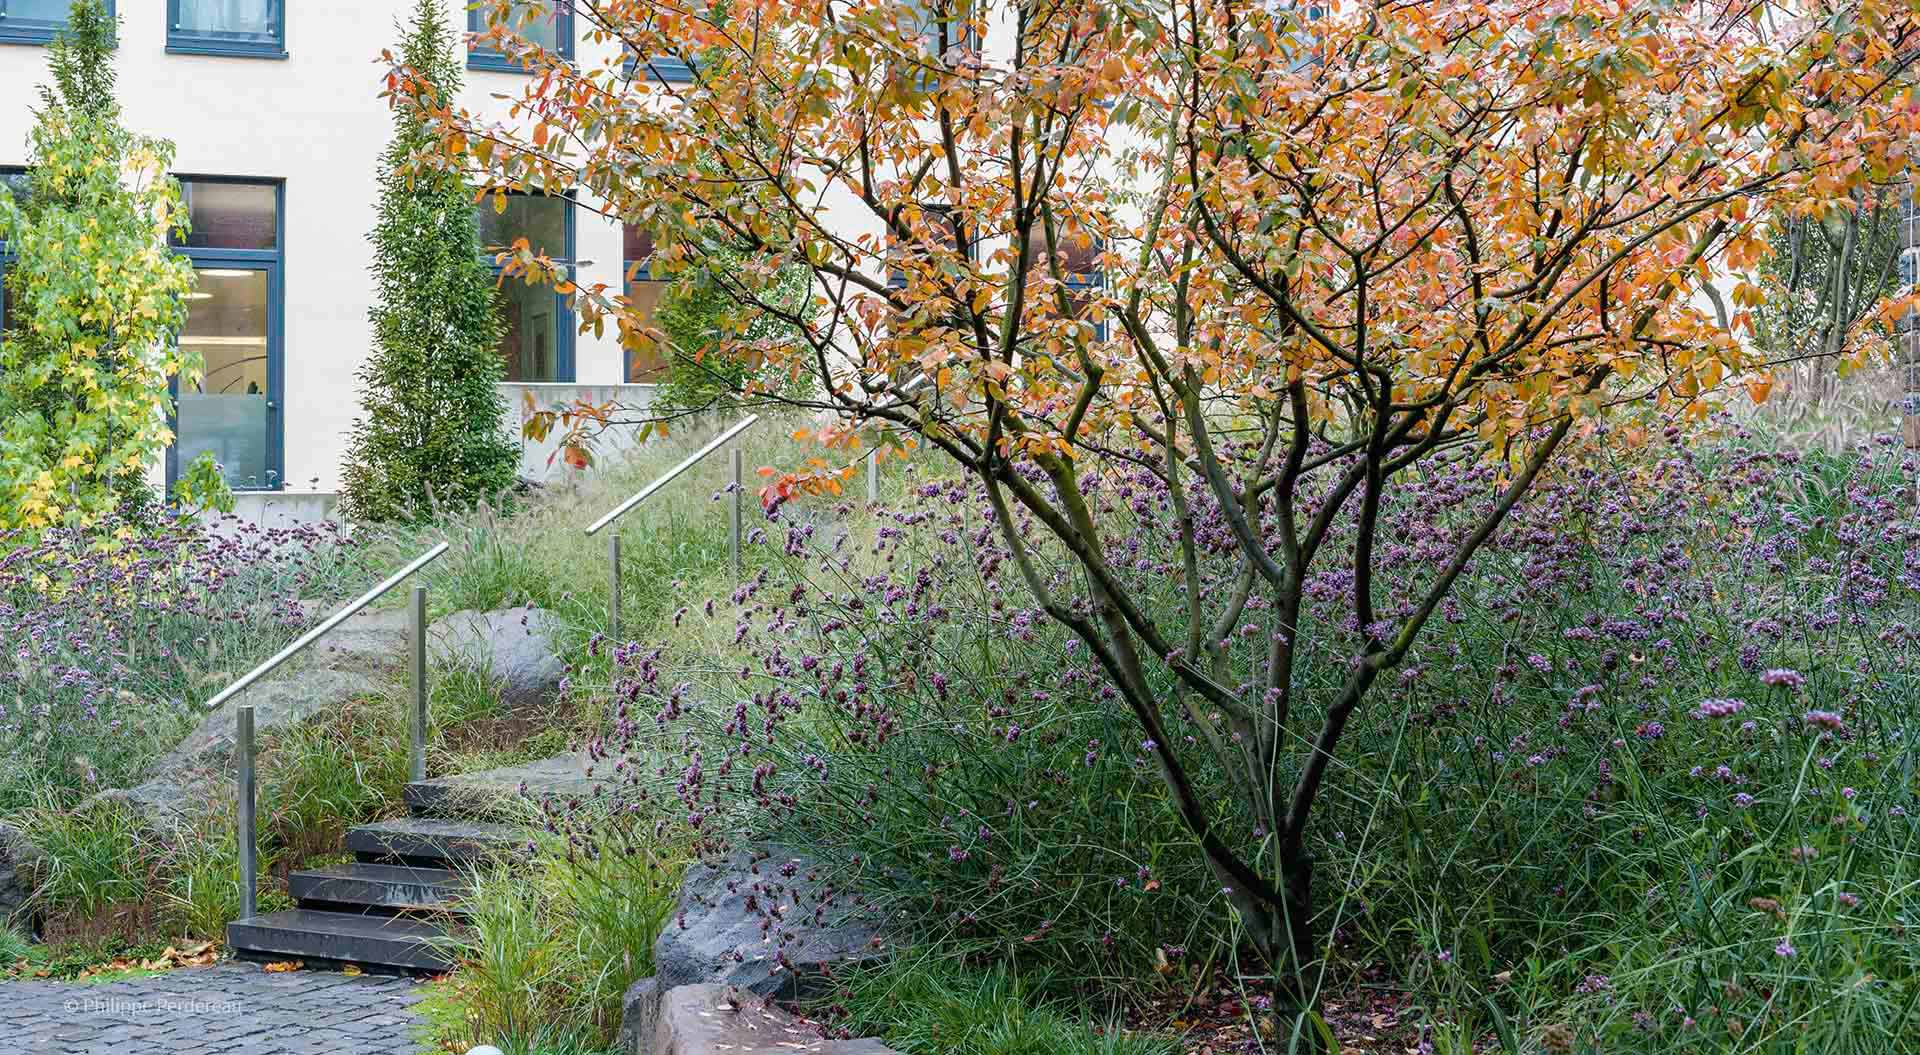 Company garden with a tree, many flowers and stone steps